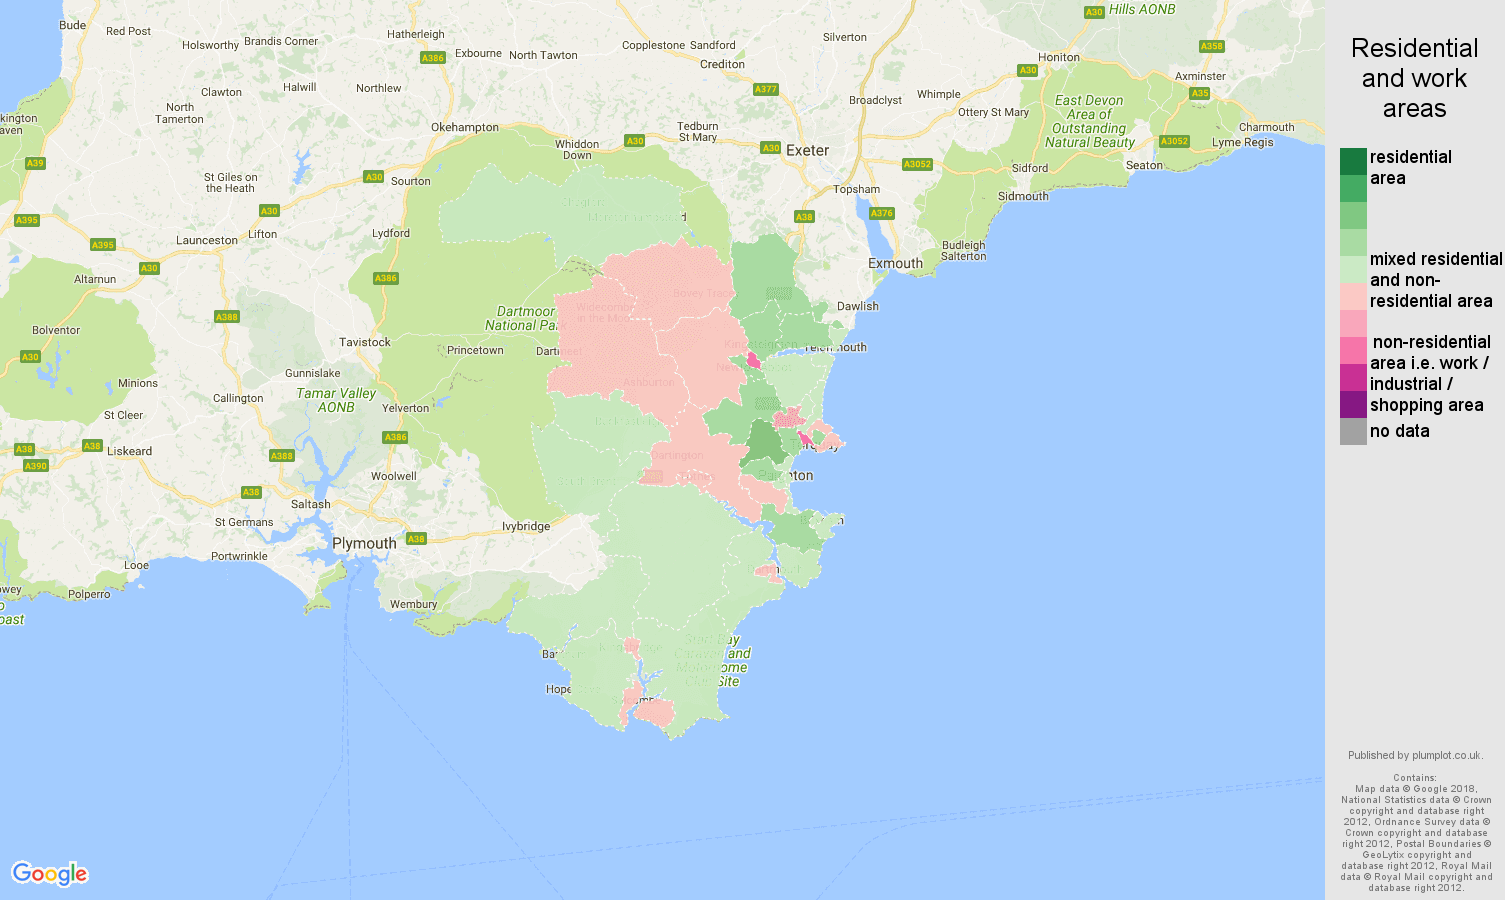 Torquay residential areas map